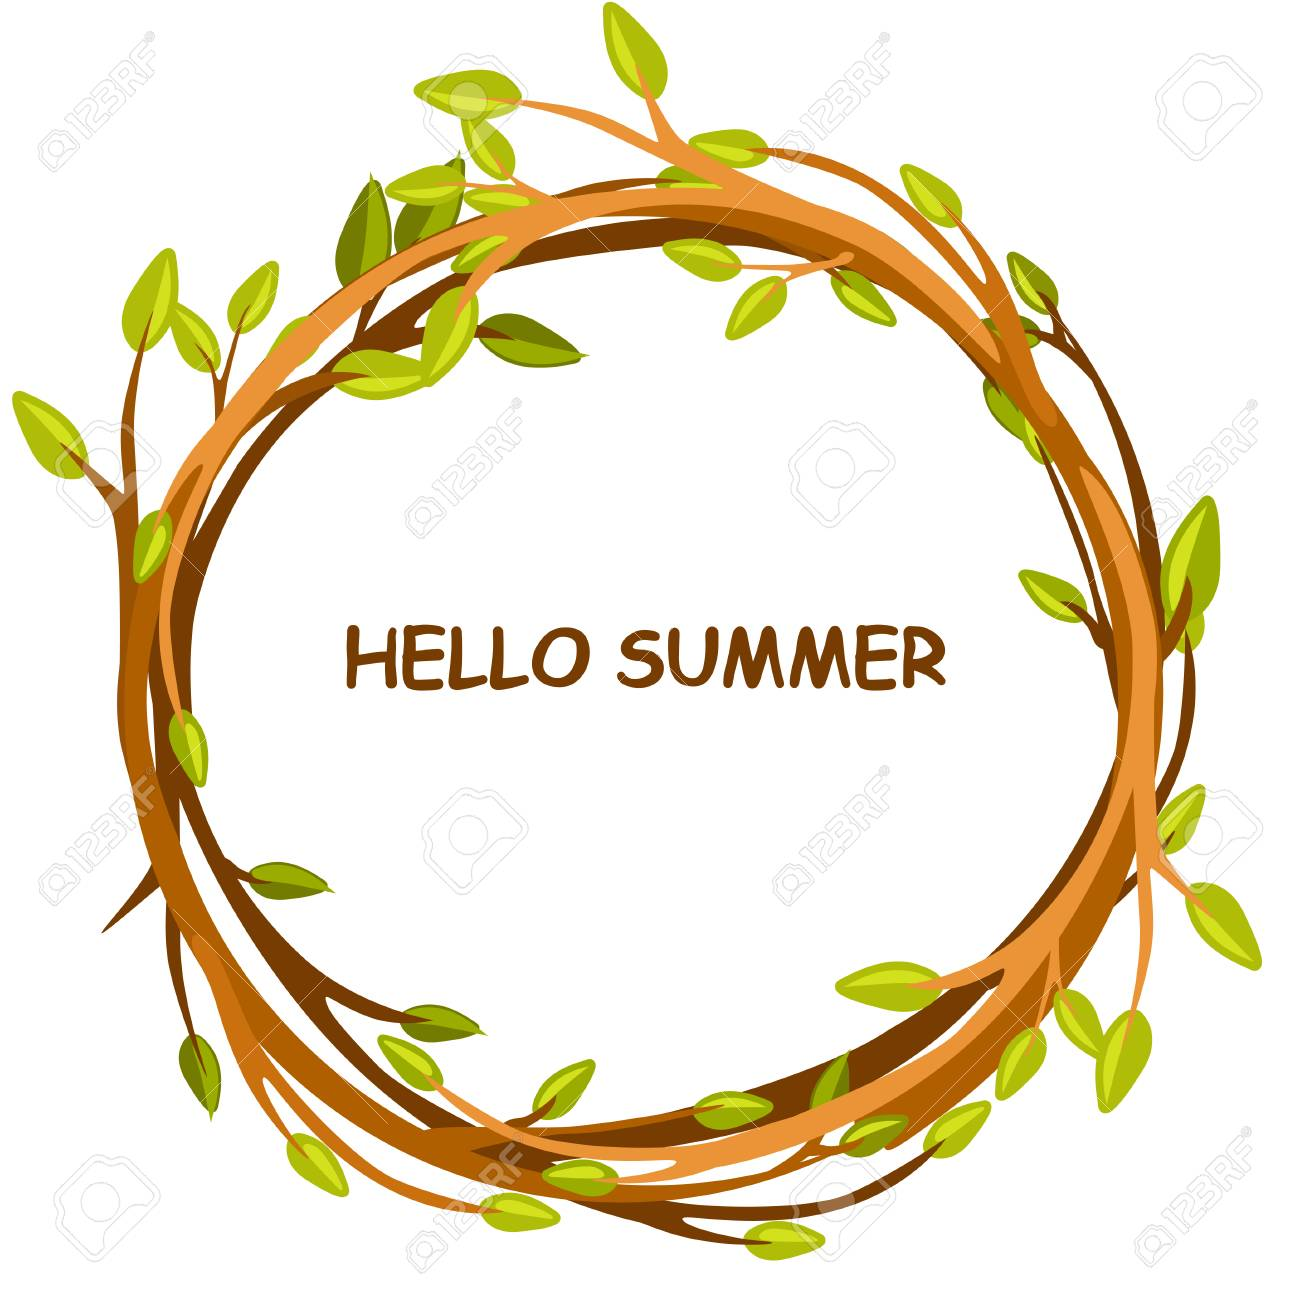 Cute Background Greeting Card, HELLO SUMMER In Circle Of Twigs, Set 4  Season Stock